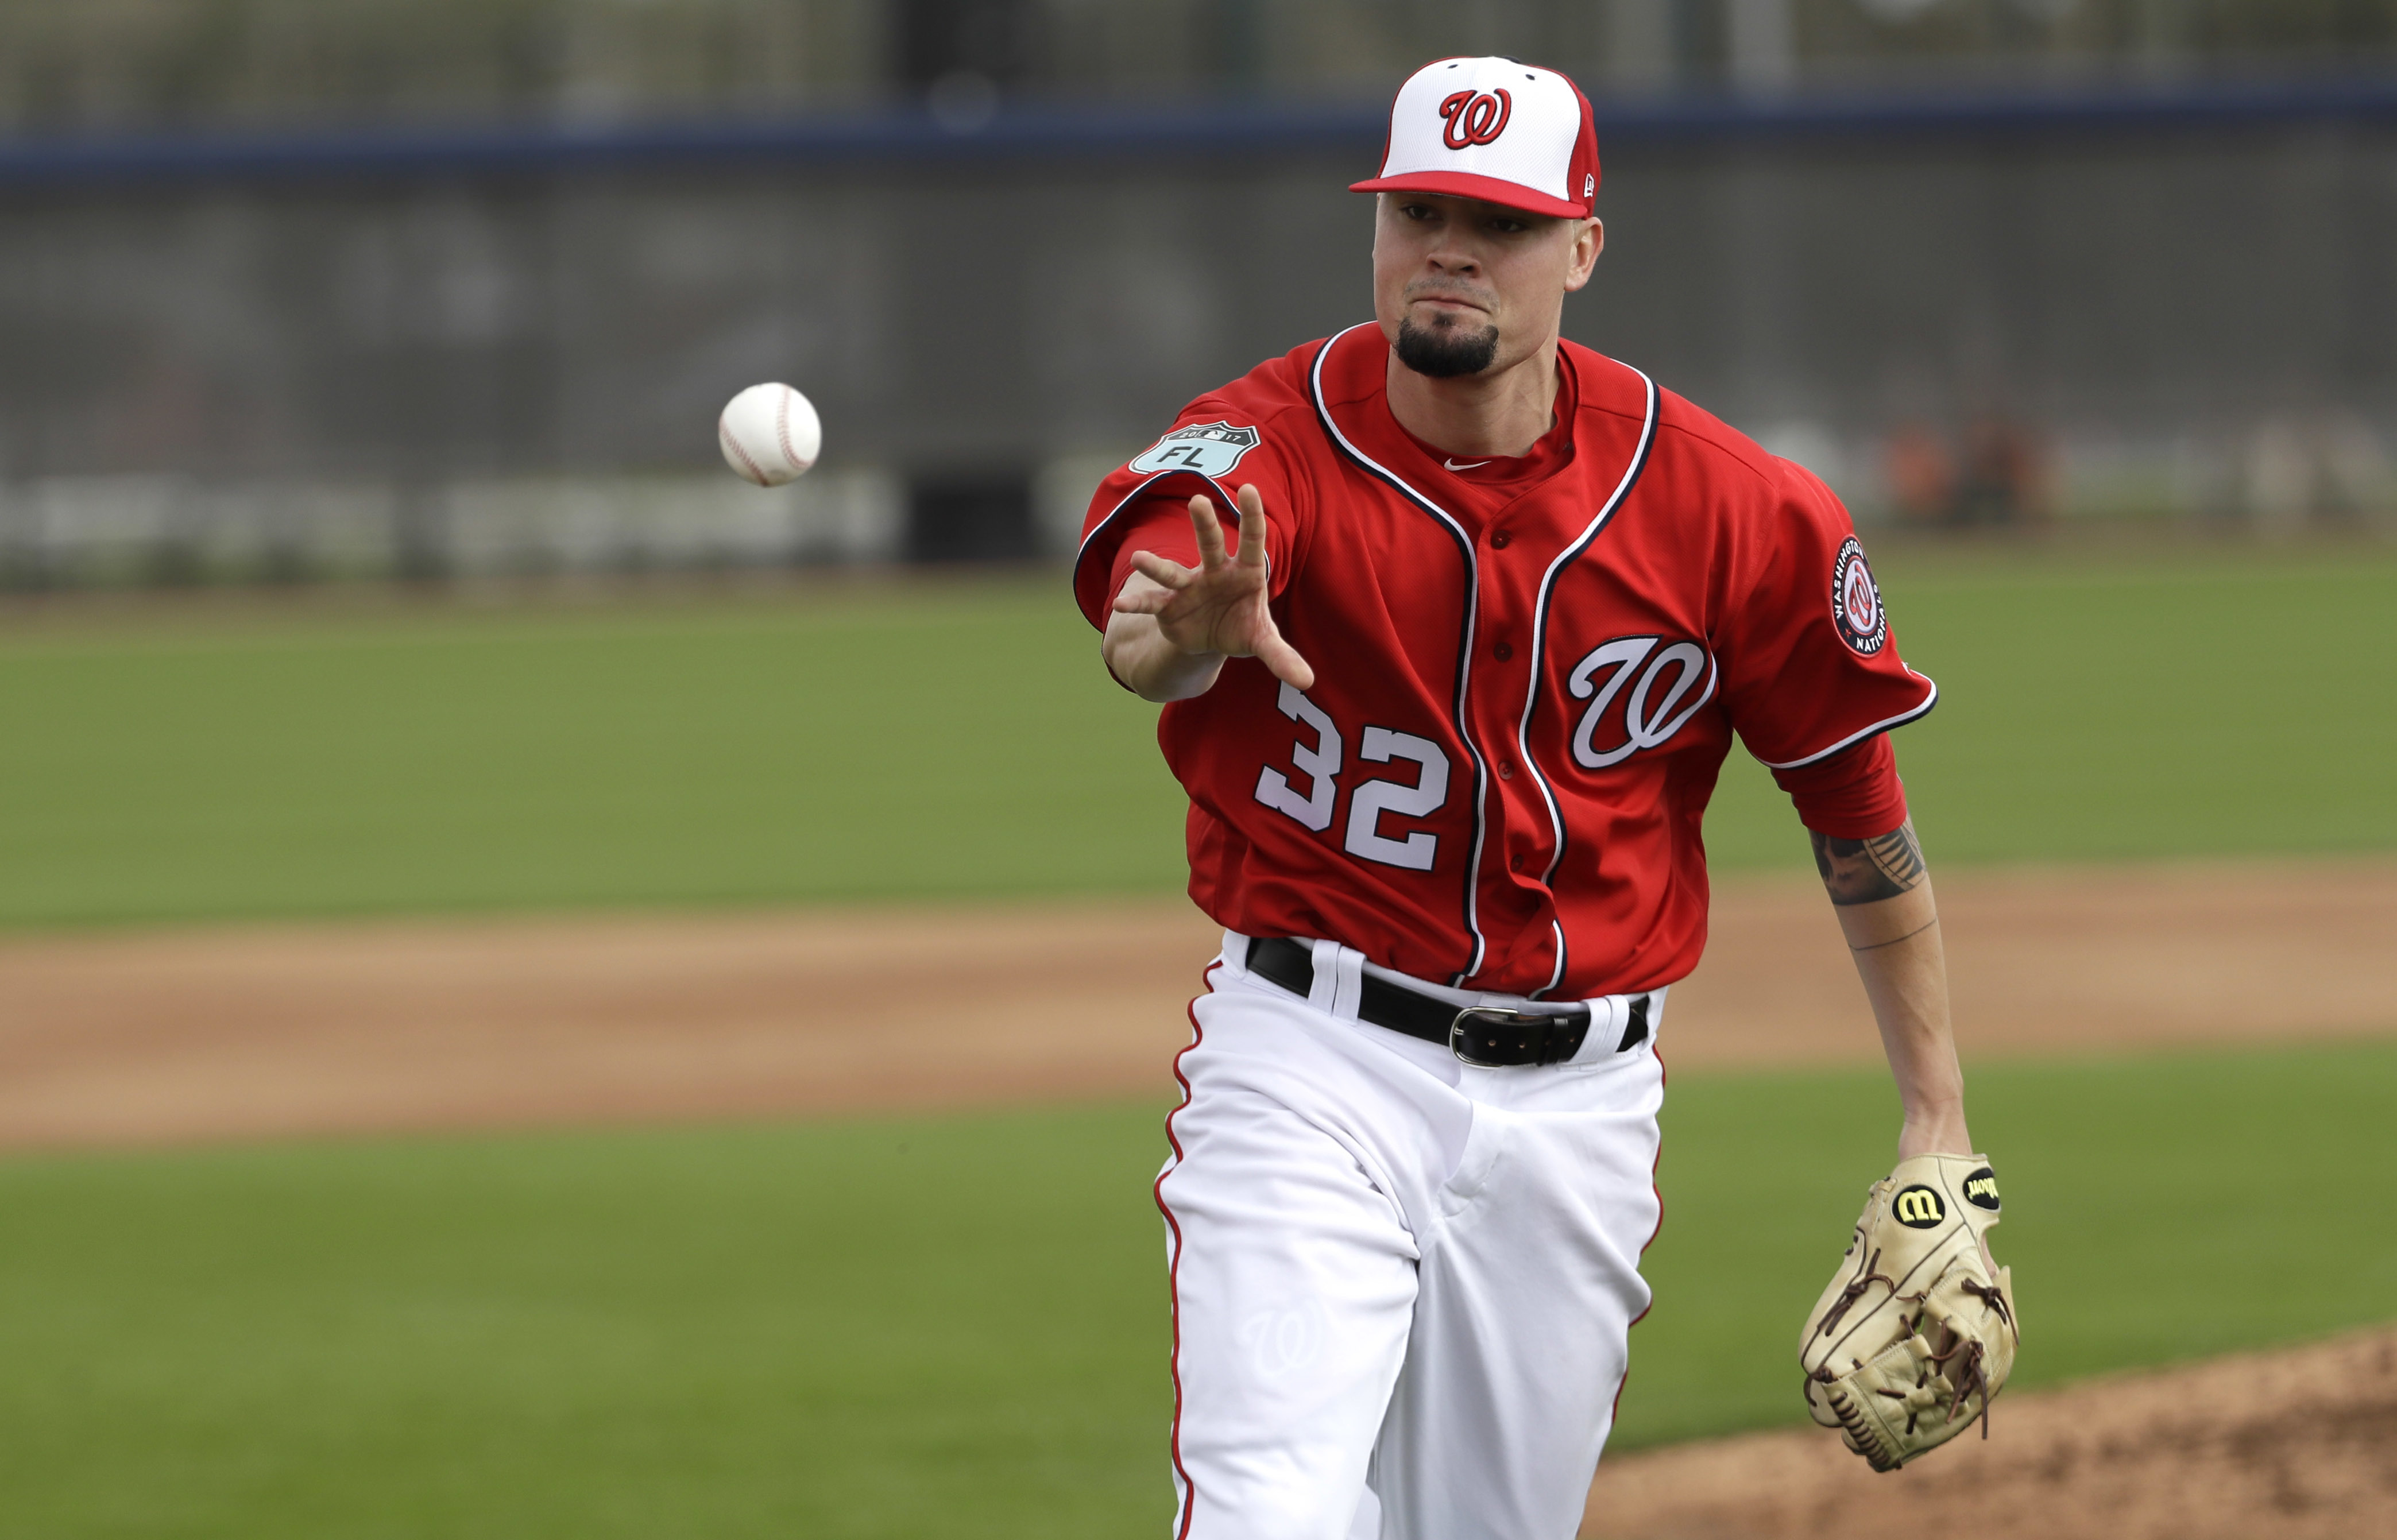 Nationals_spring_baseball_89599.jpg-af4be